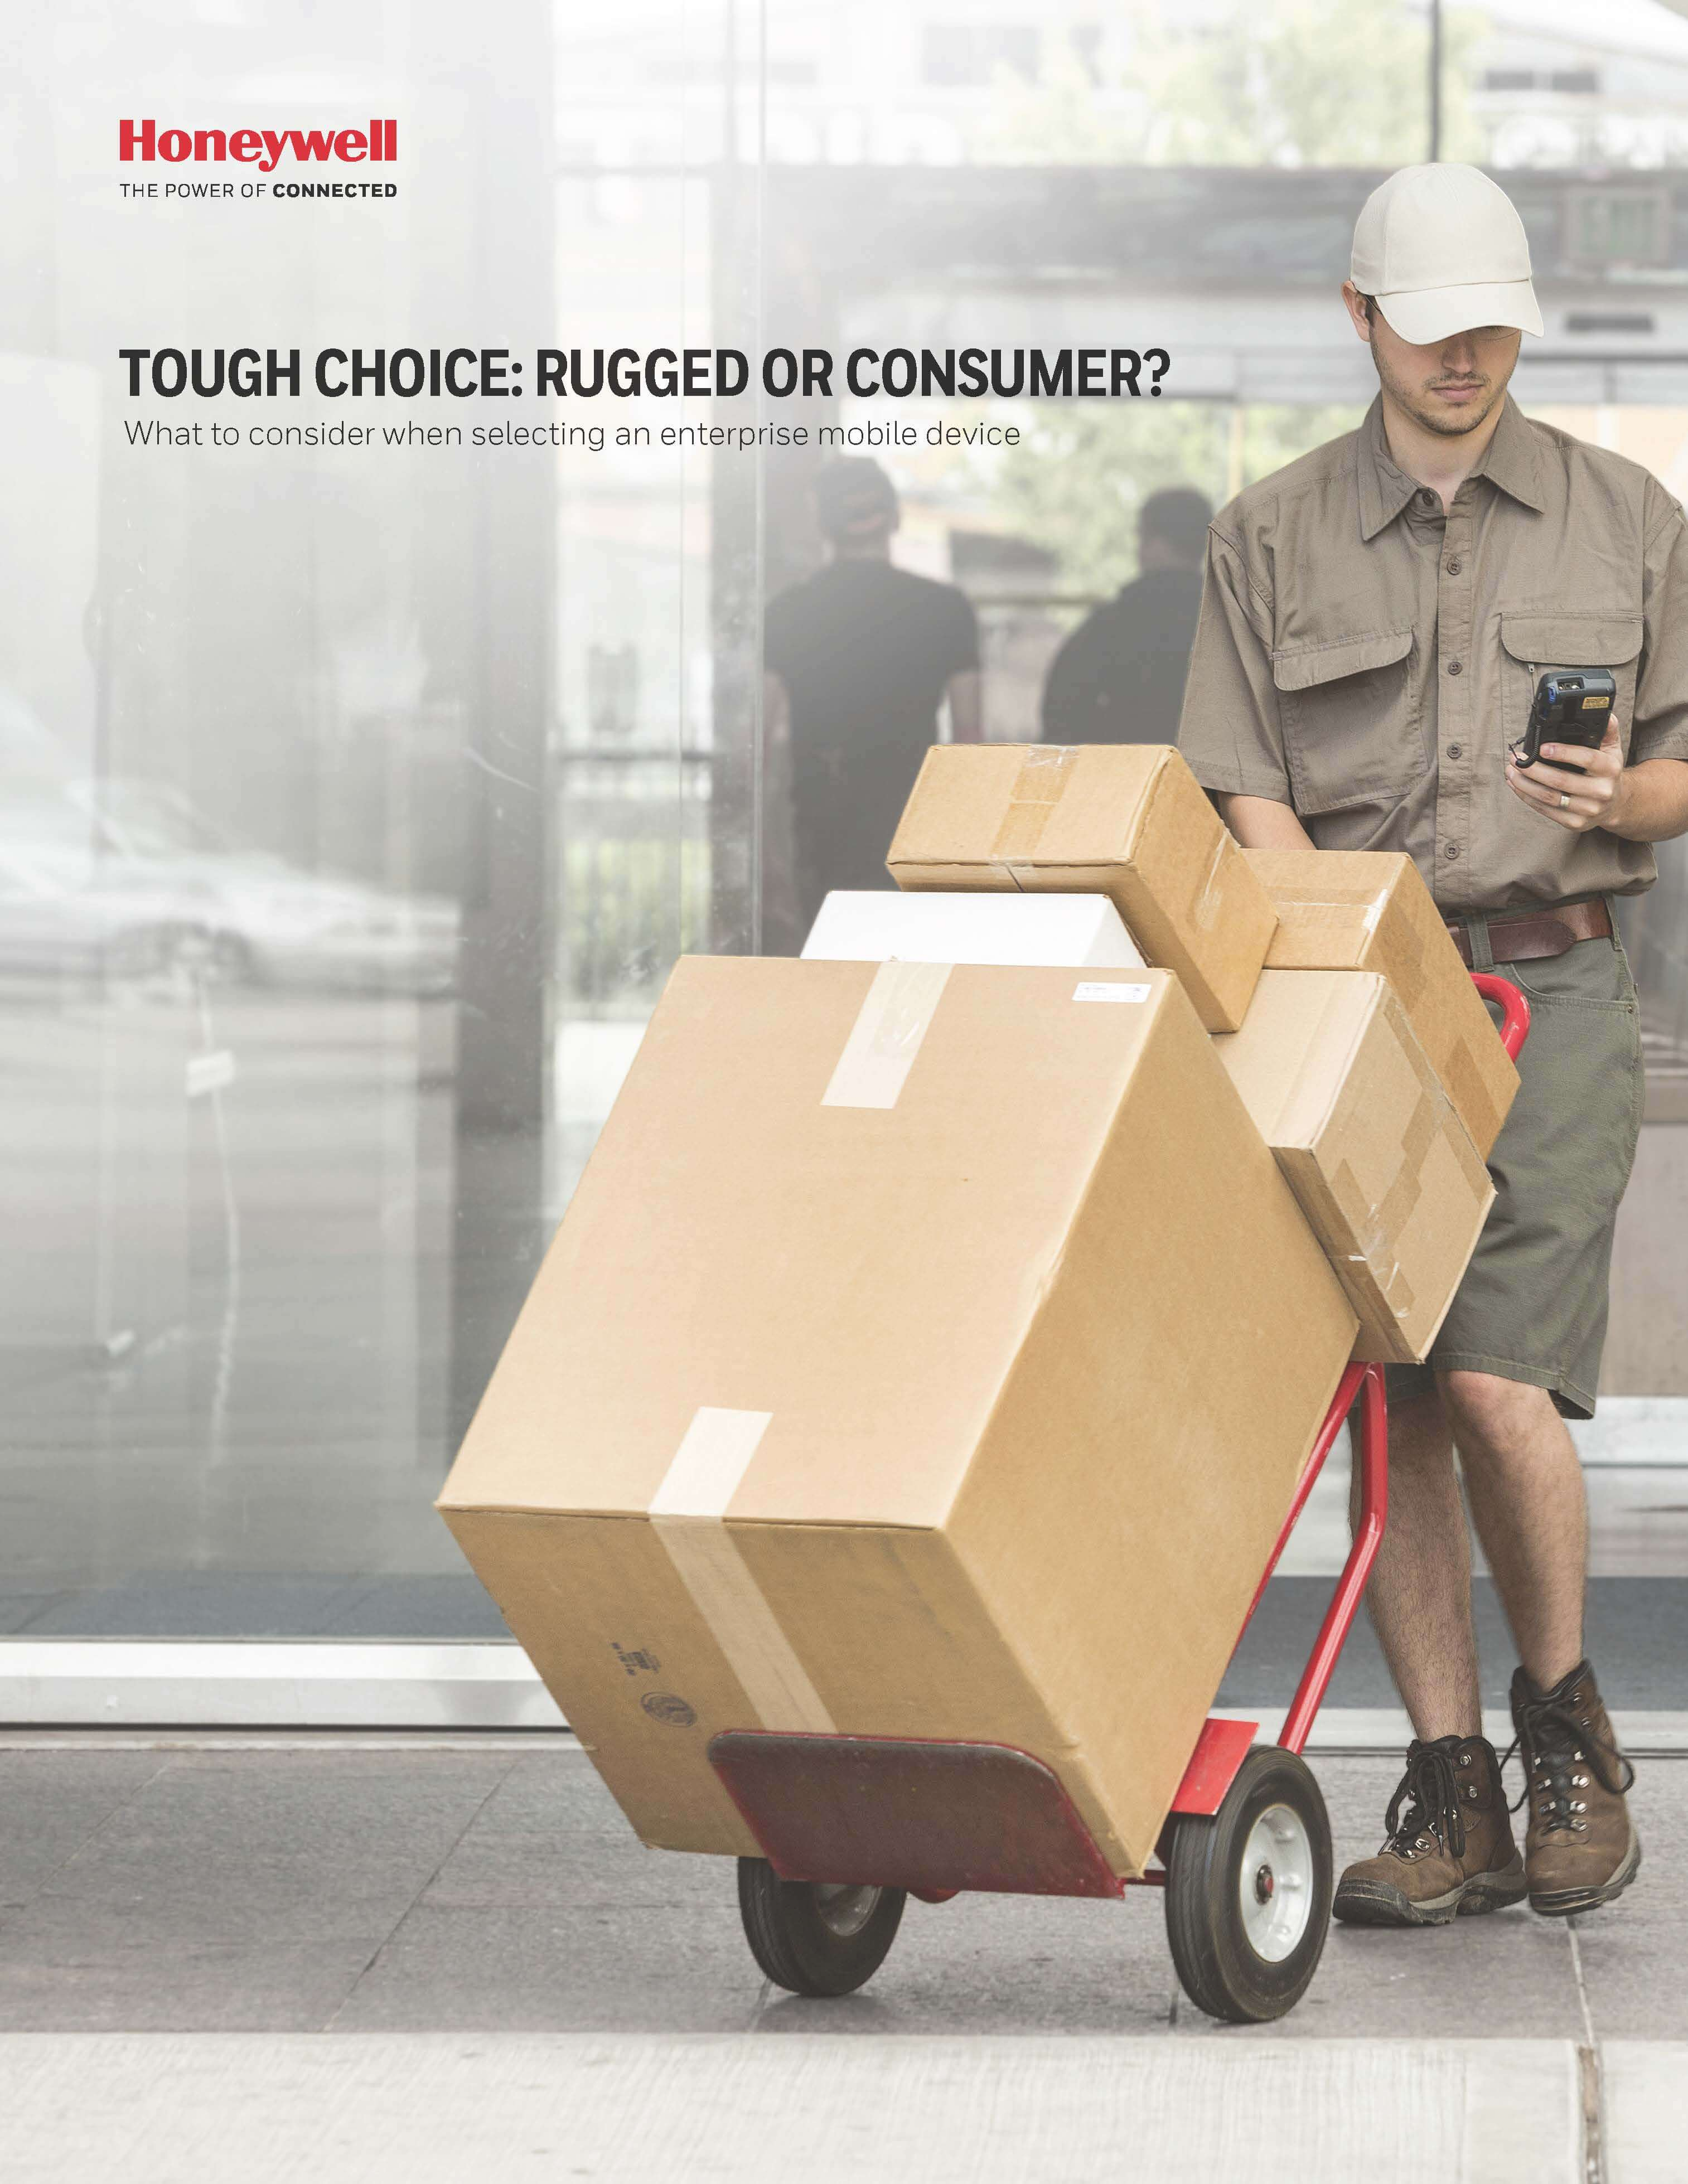 Tough choice: rugged or consumer?